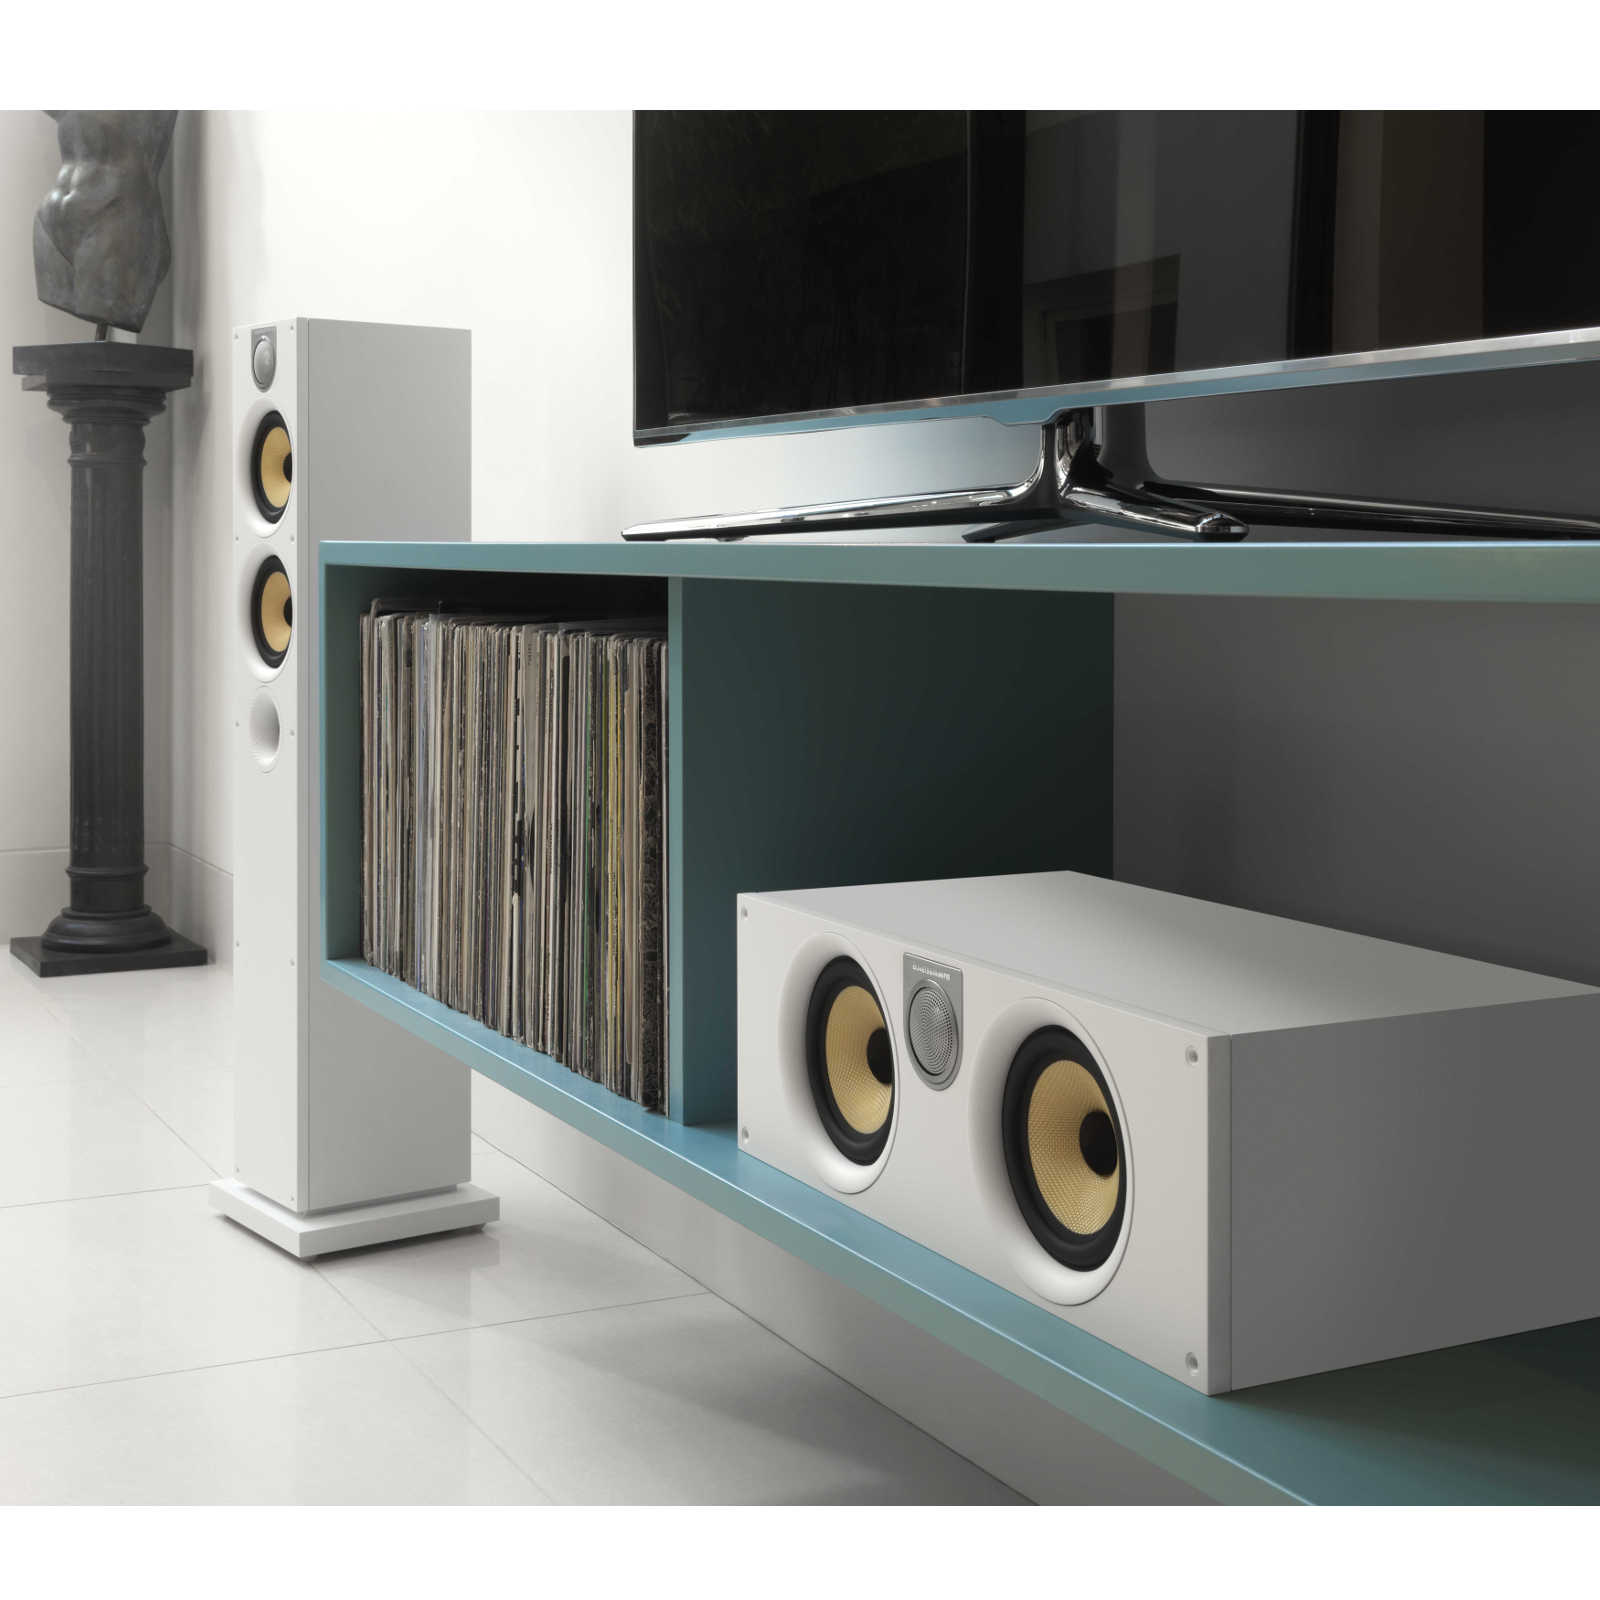 b w htm62 s2 blanc enceintes hifi bowers wilkins sur. Black Bedroom Furniture Sets. Home Design Ideas